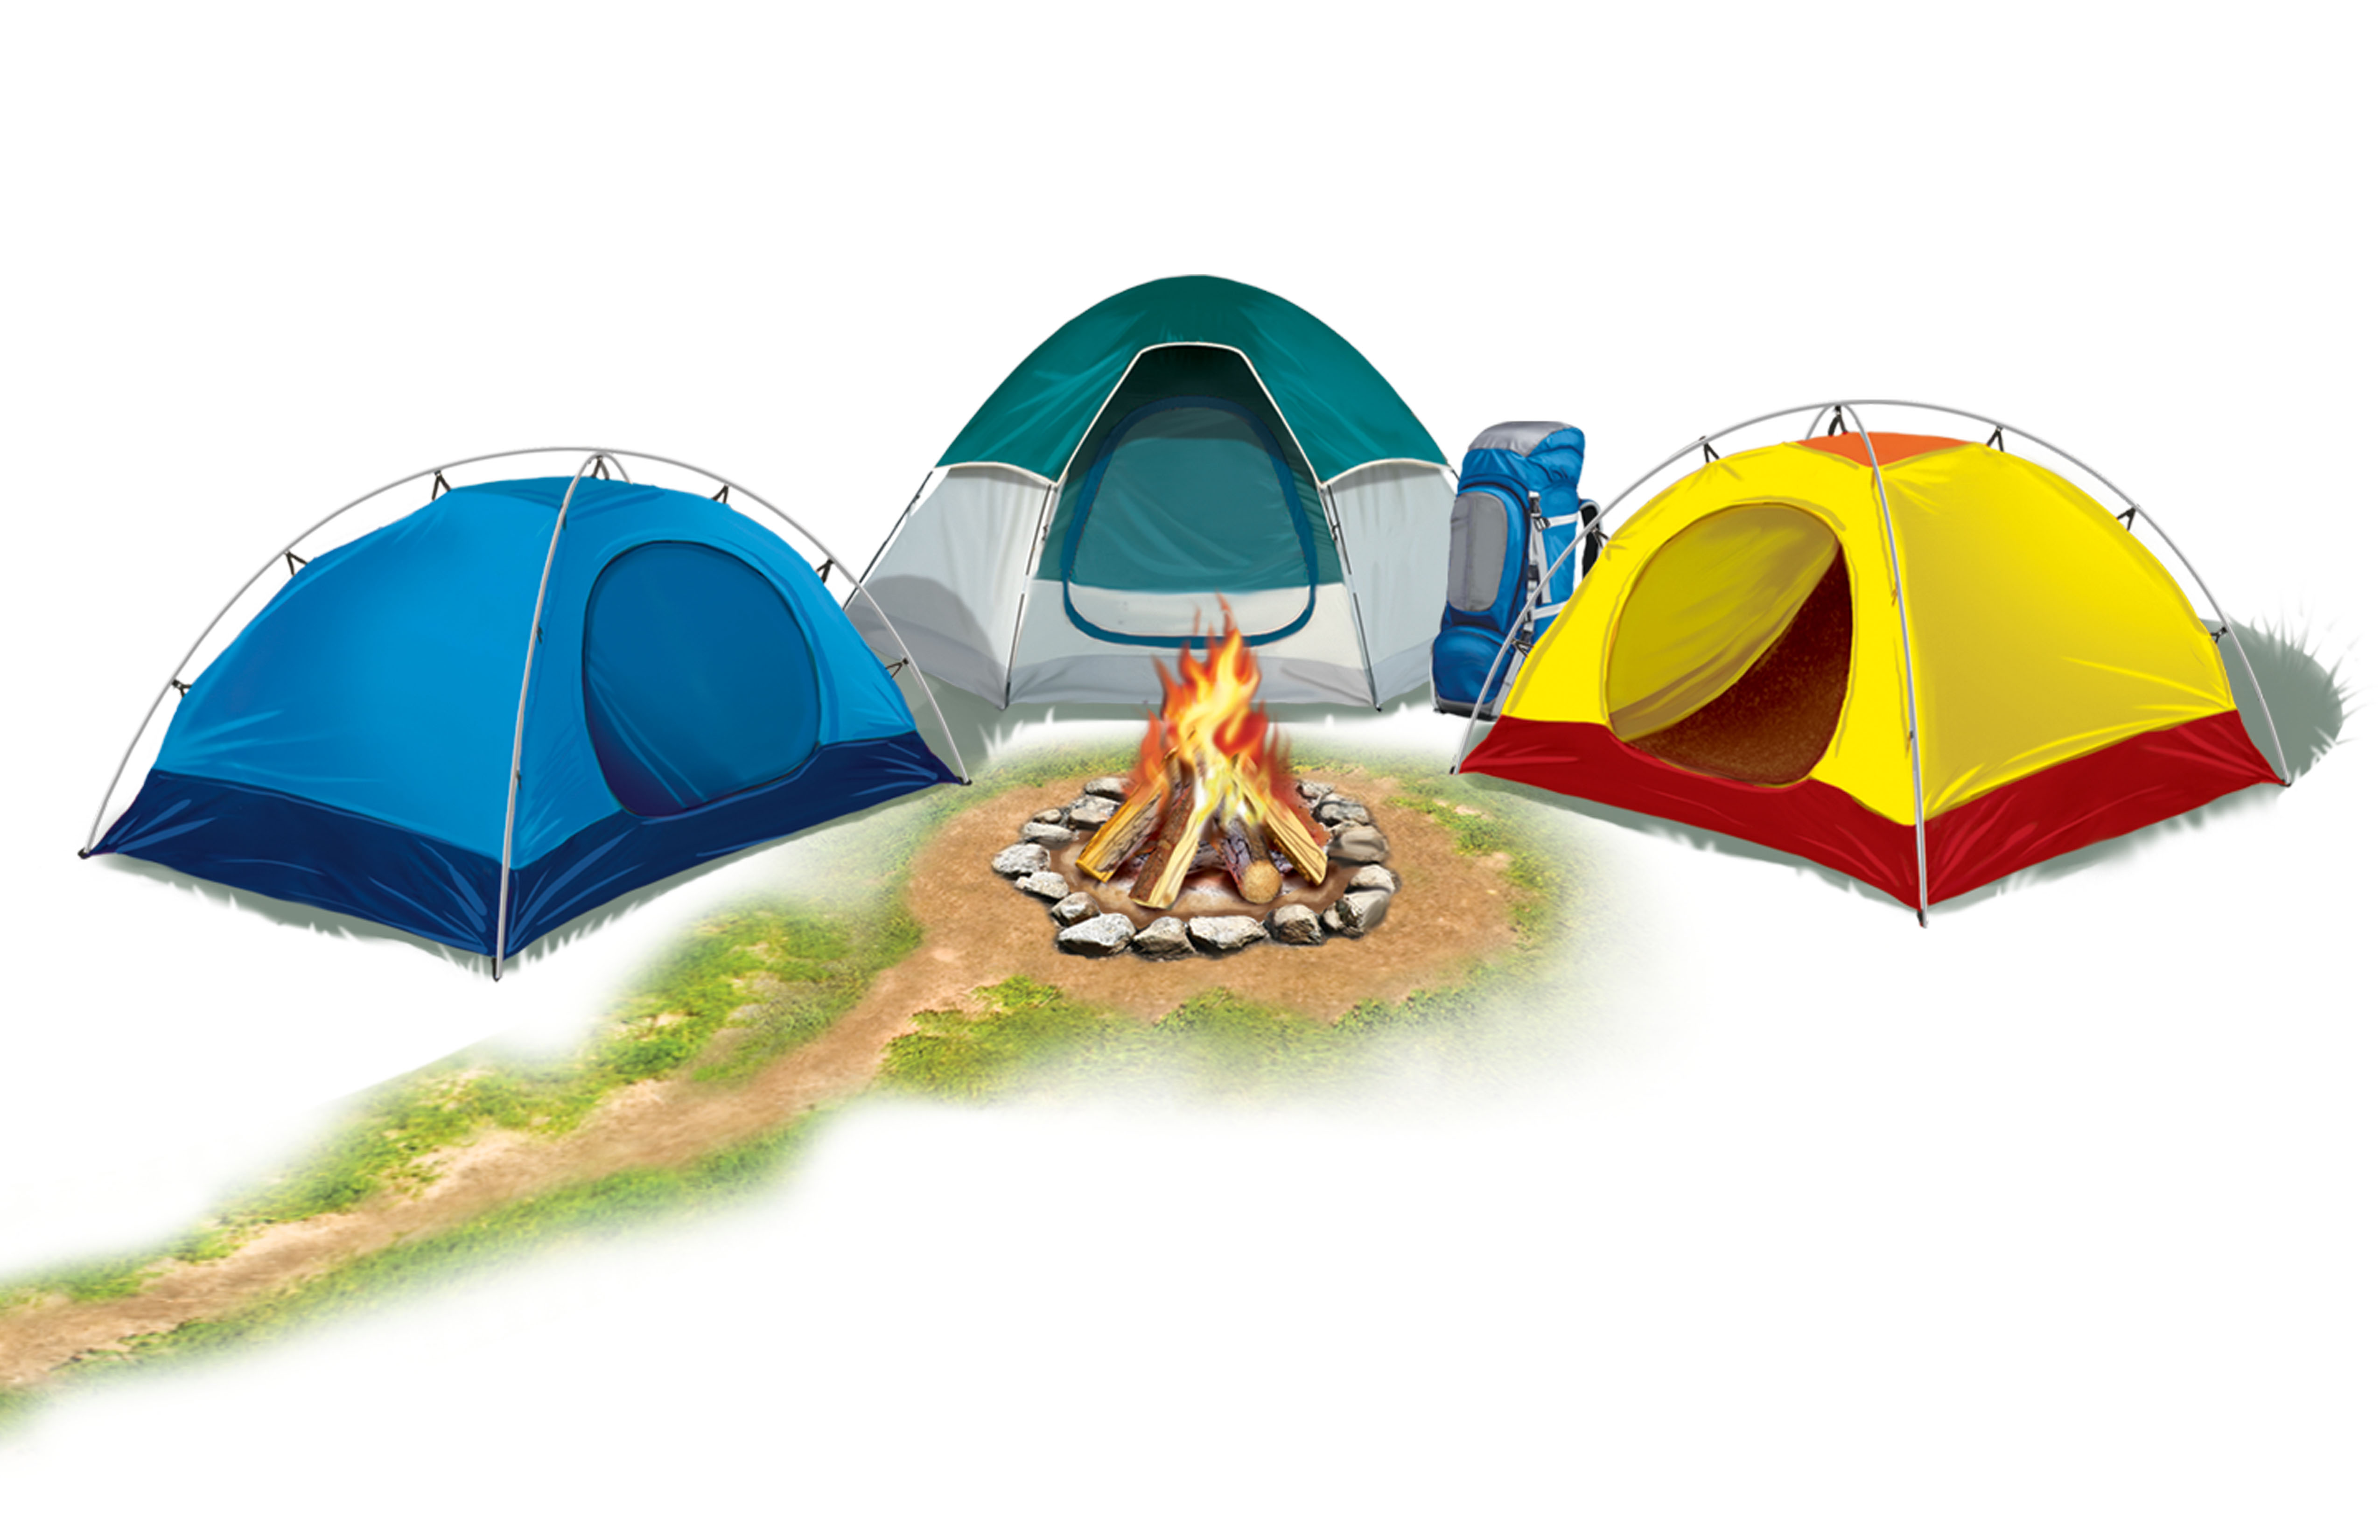 Camping clipart campground. Animated camp clip art